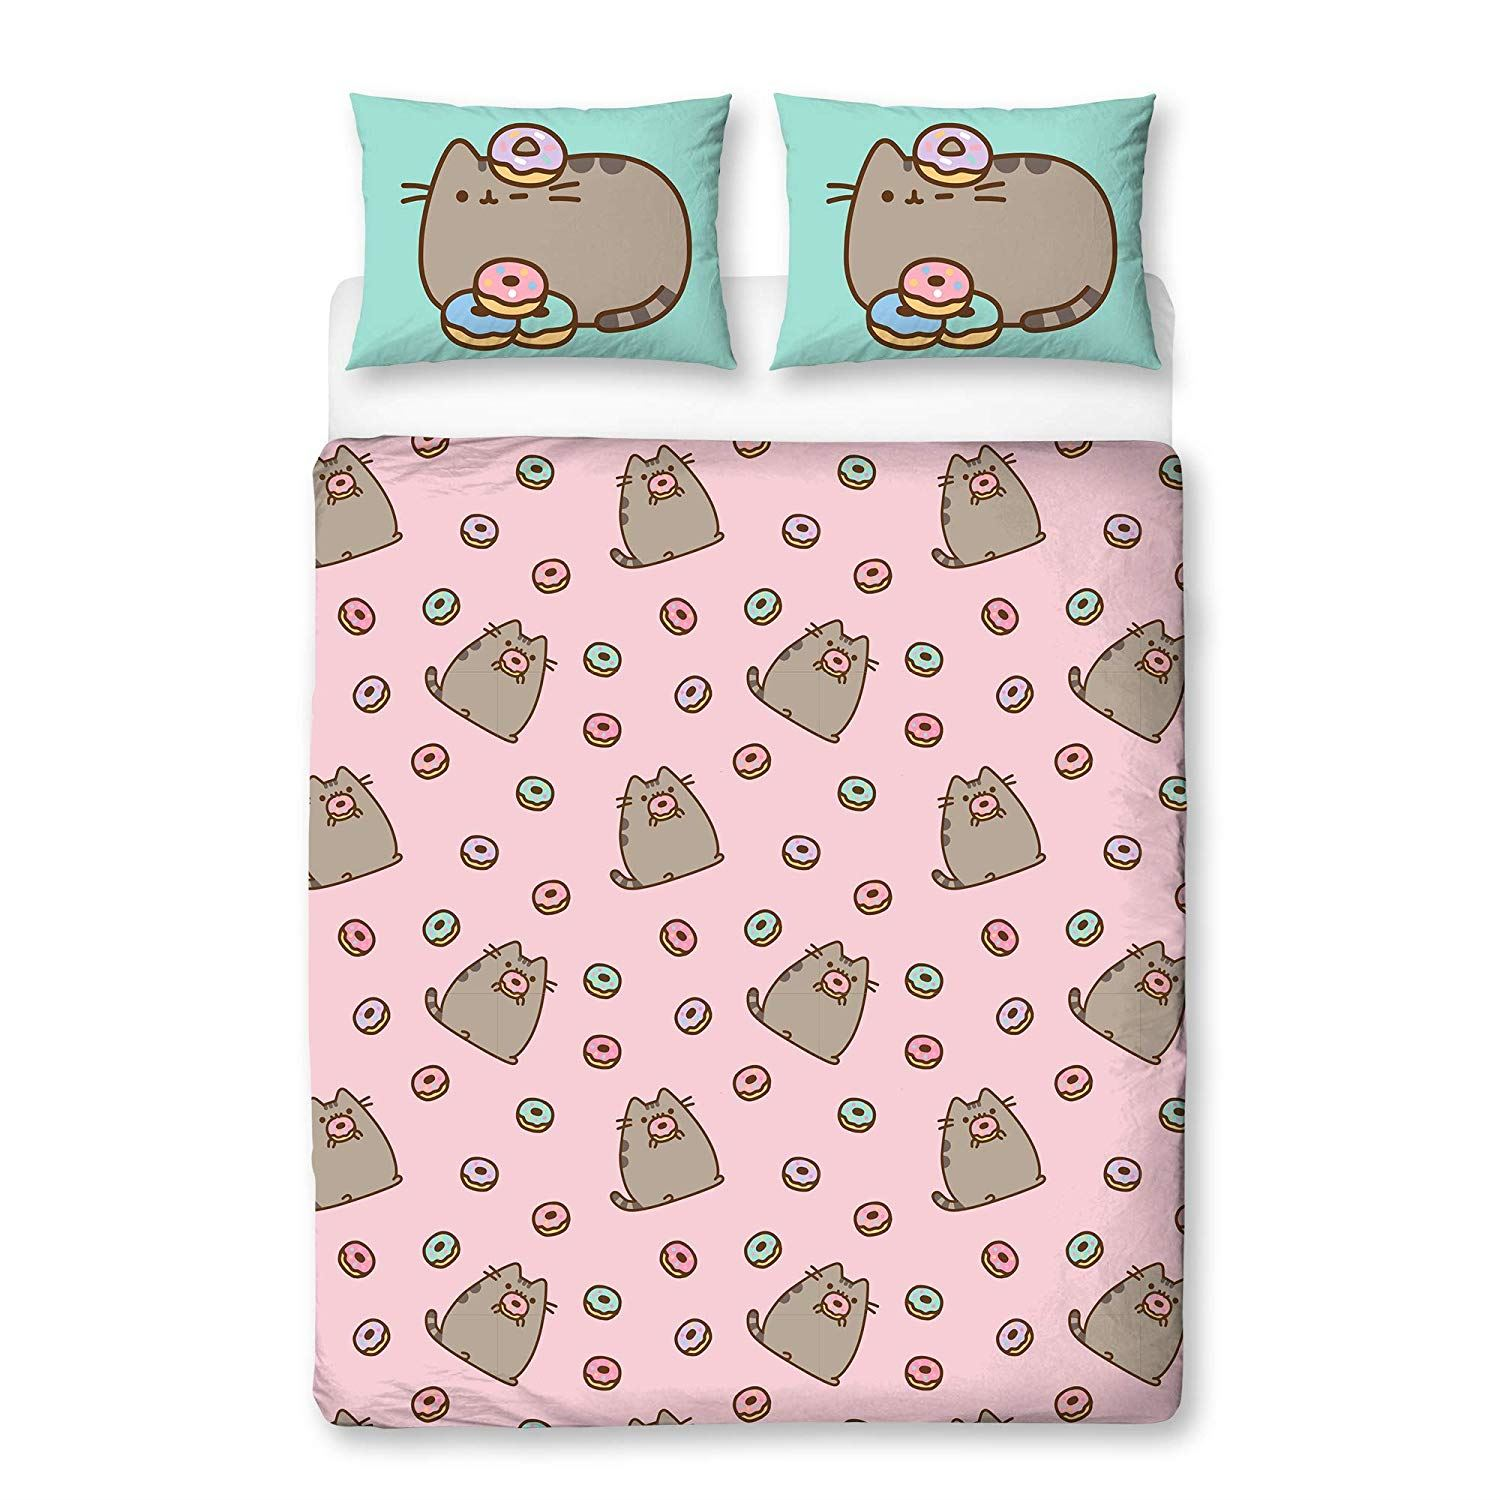 Pusheen-Doughnut-Single-Double-Reversible-Duvet-Cover-Bedding-Set thumbnail 6